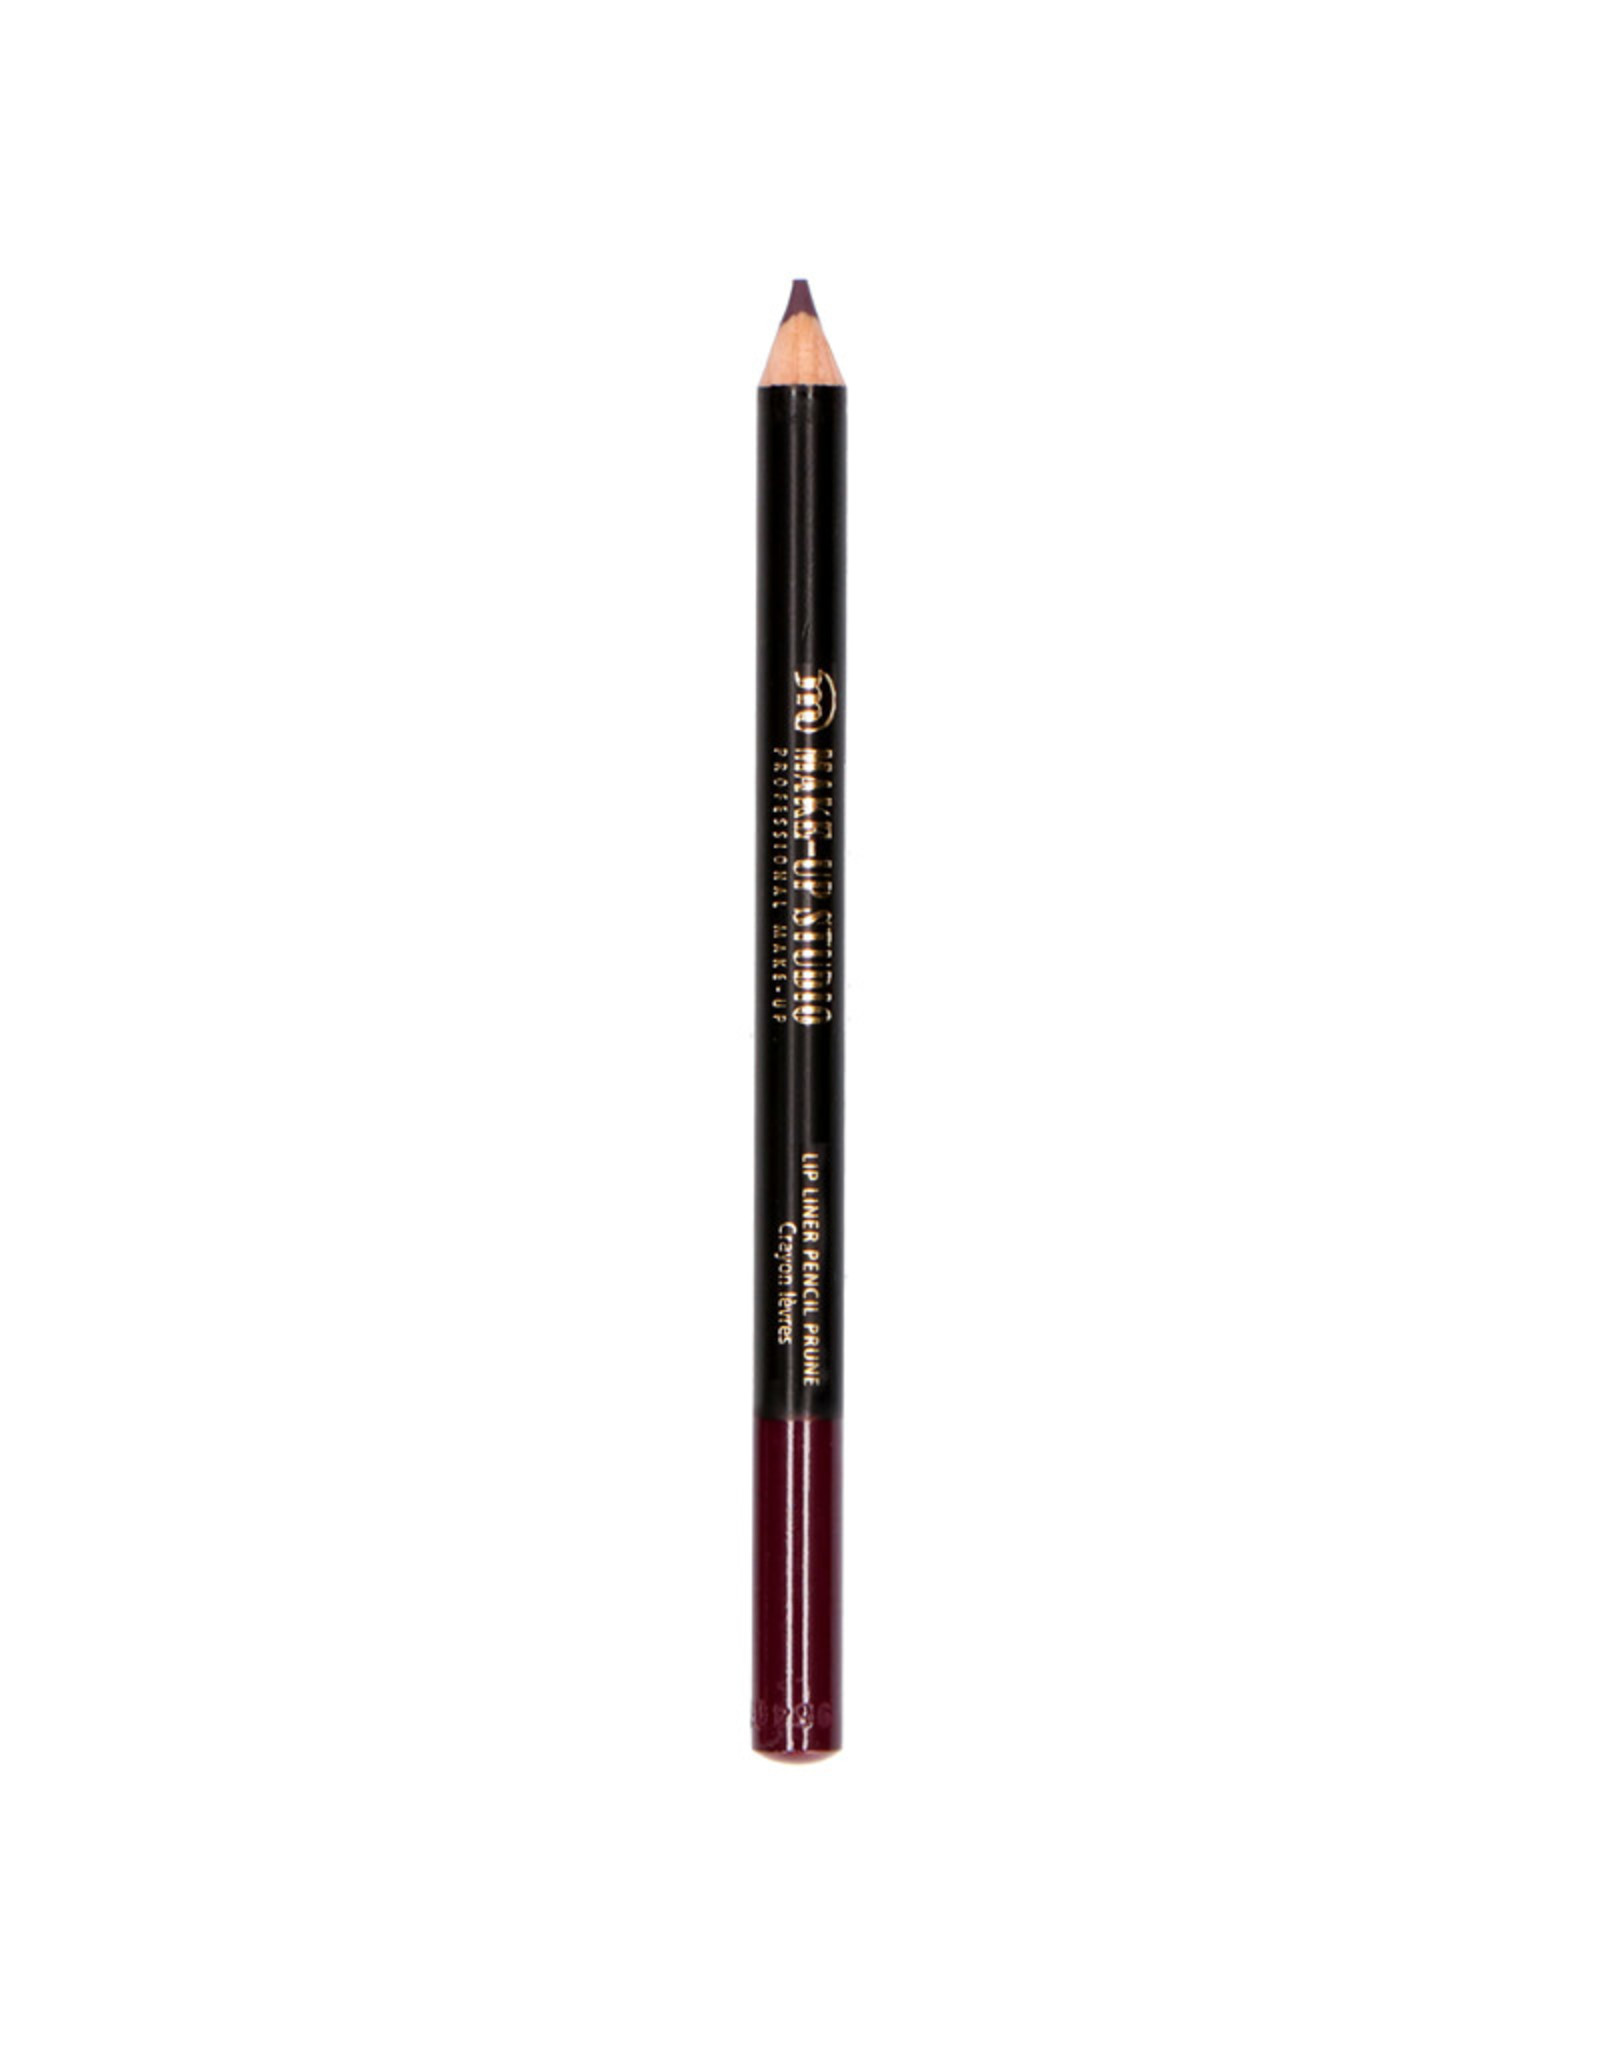 MAKE-UP STUDIO LIP LINER PENCIL 10